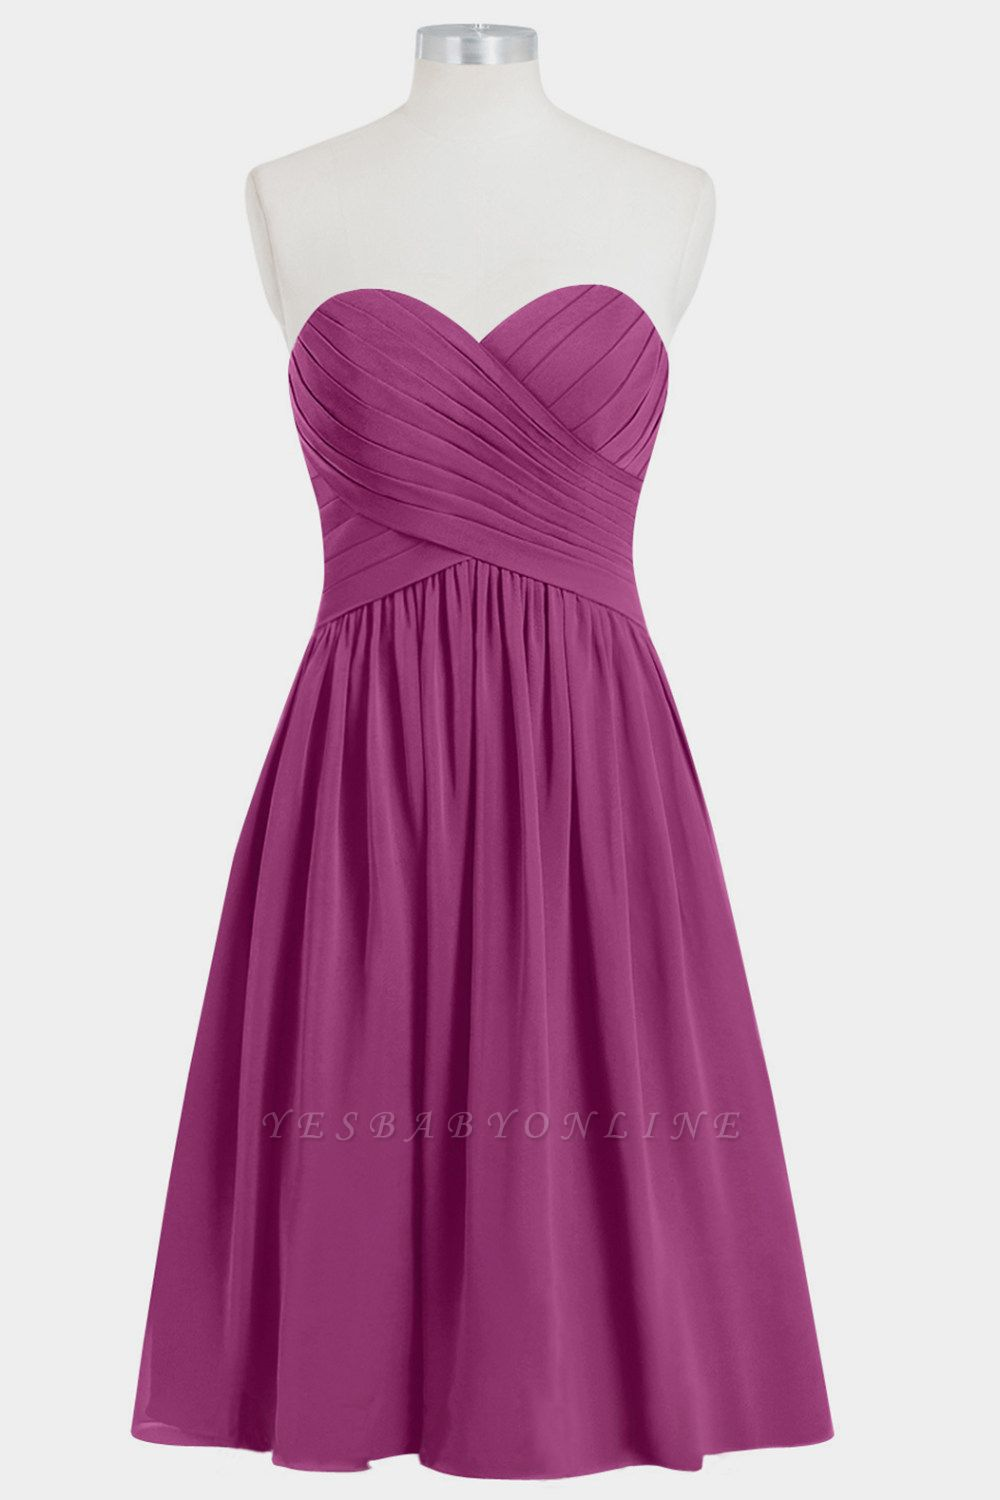 A Line Chiffon Strapless Sweetheart Knee Length Bridesmaid Dresses with Ruffles